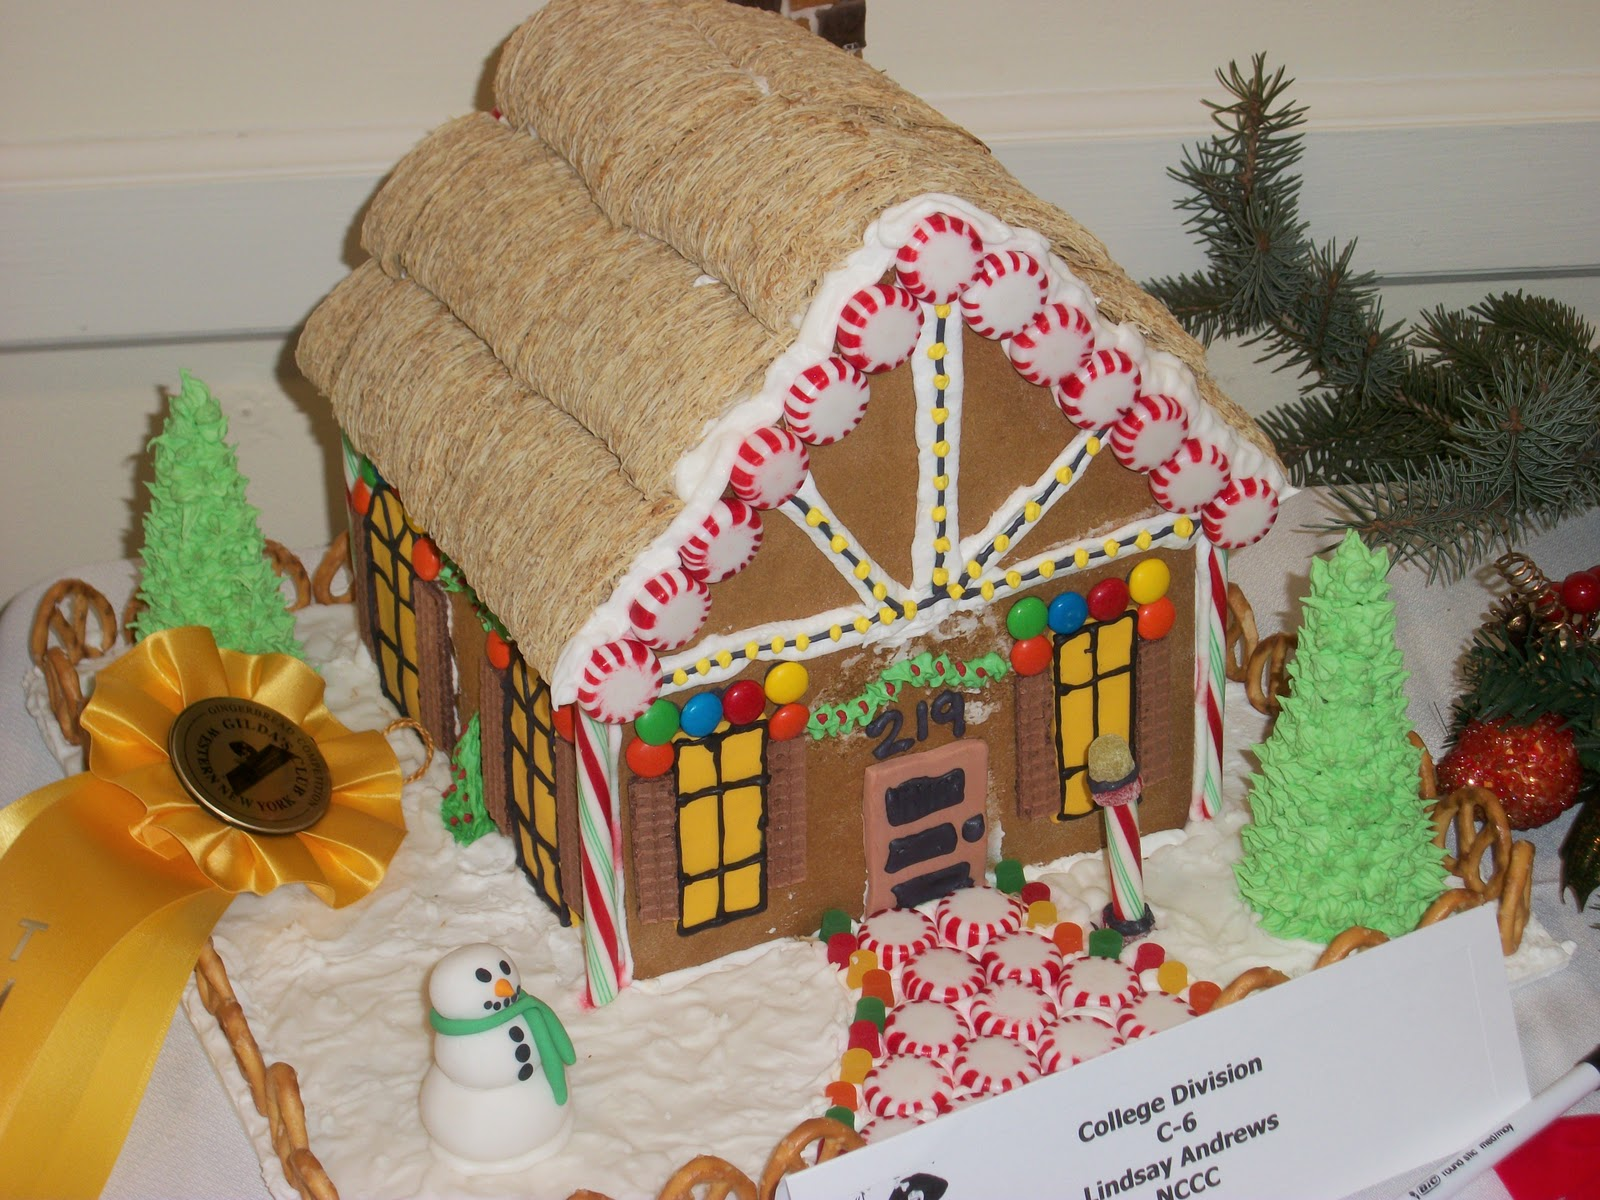 Lola pearl bake shoppe 2010 diy gingerbread house inspiration solutioingenieria Images